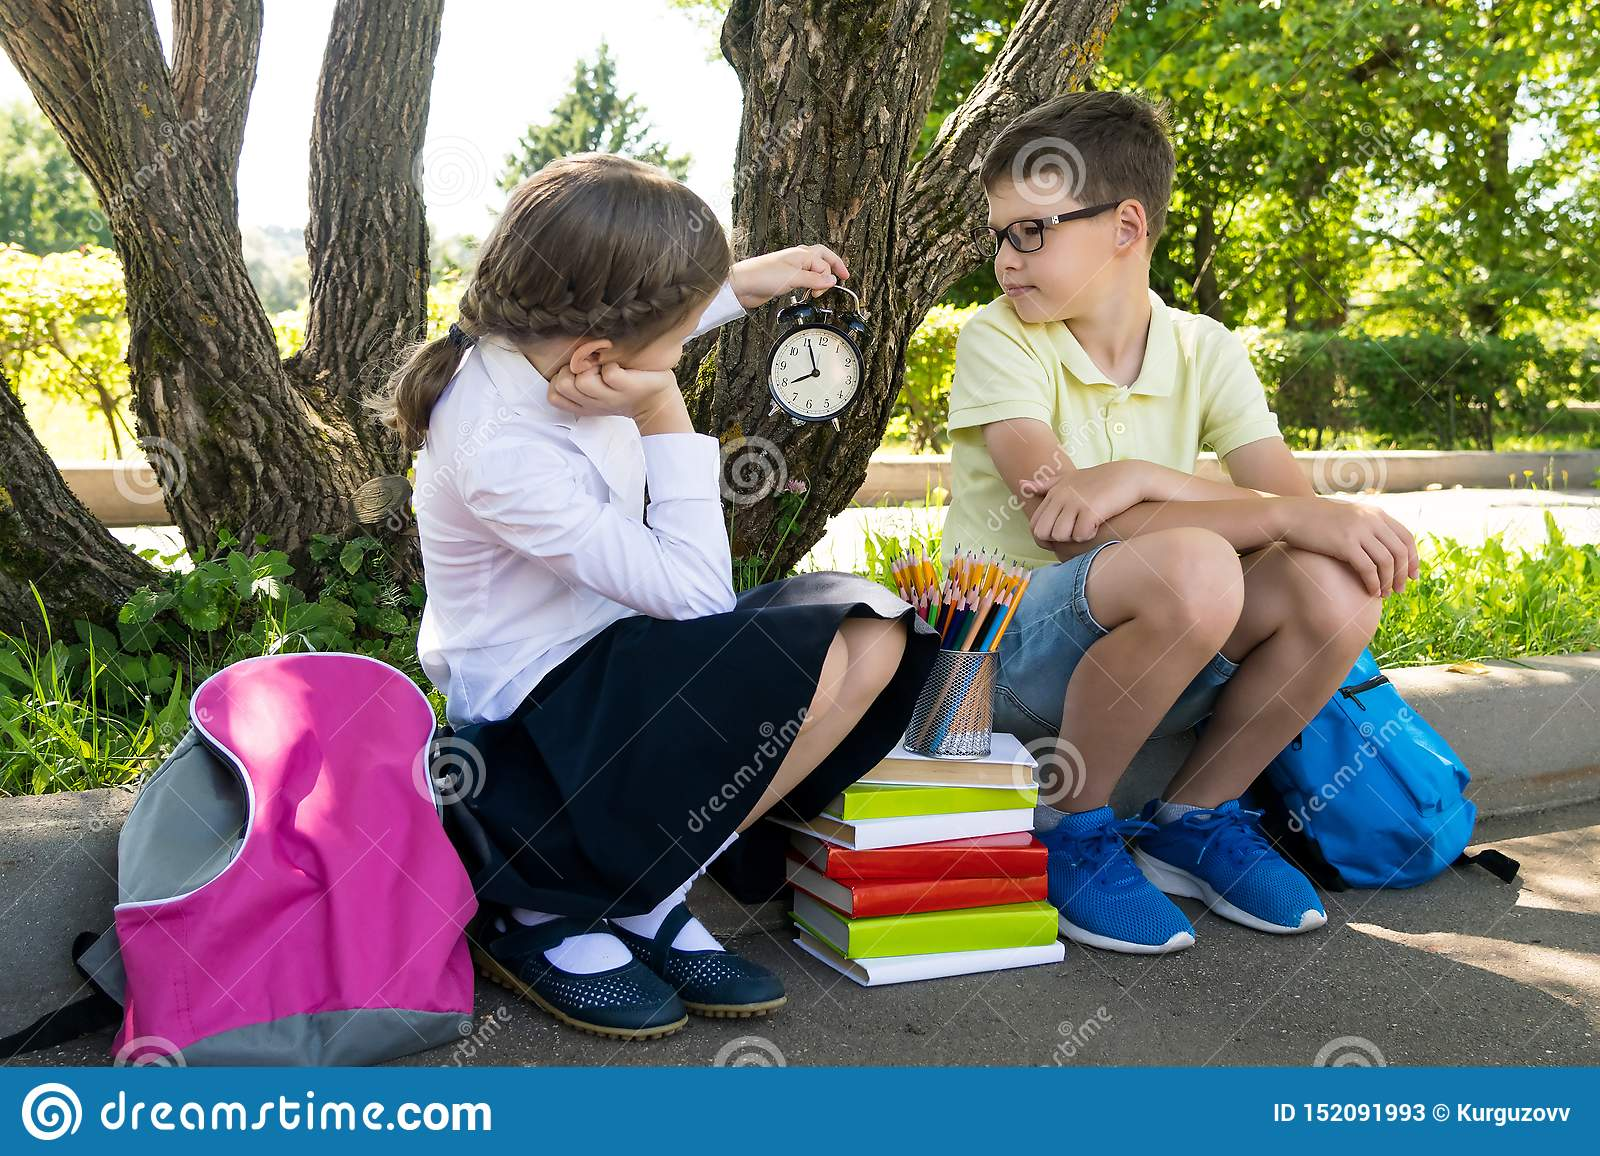 Schoolboy and schoolgirl look at the clock and wait for the lesson to begin in the park